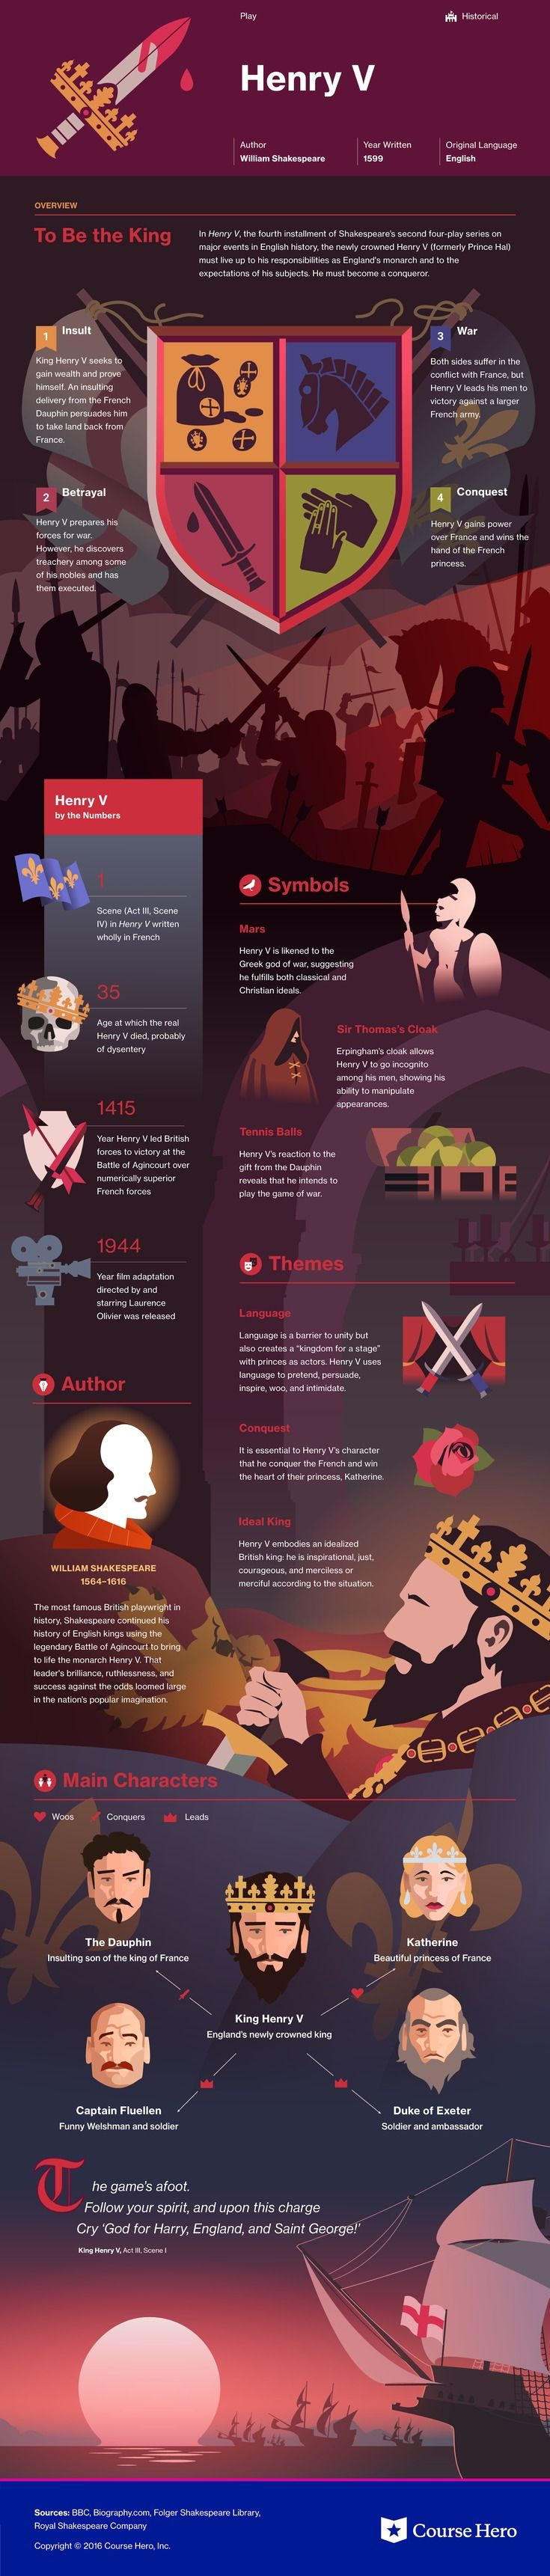 This @CourseHero infographic on Henry V is both visually stunning and…